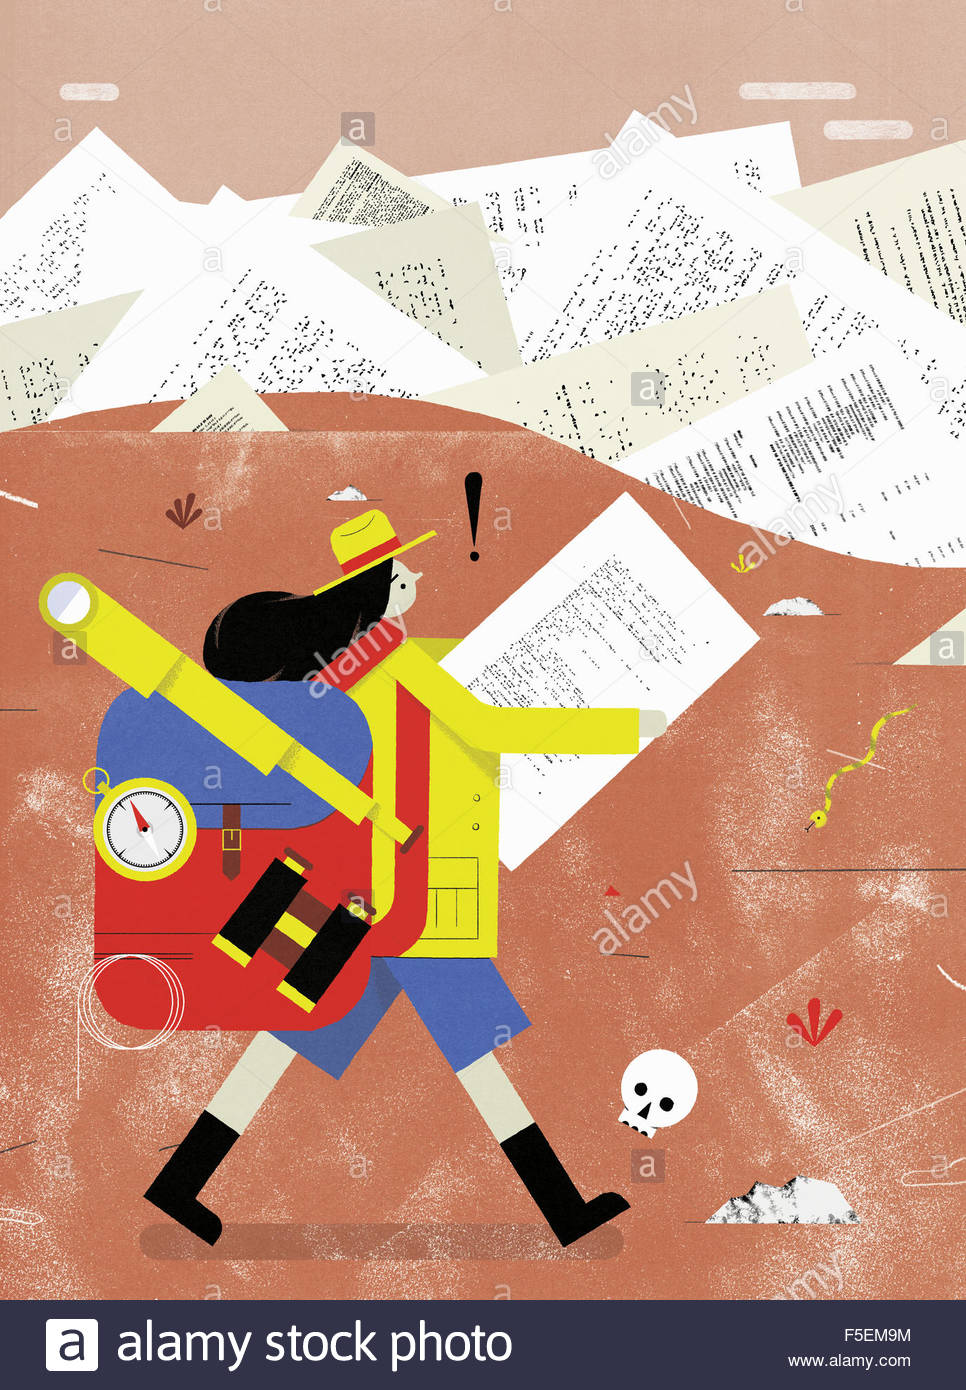 Woman hiker lost in barren landscape of paperwork - Stock Image